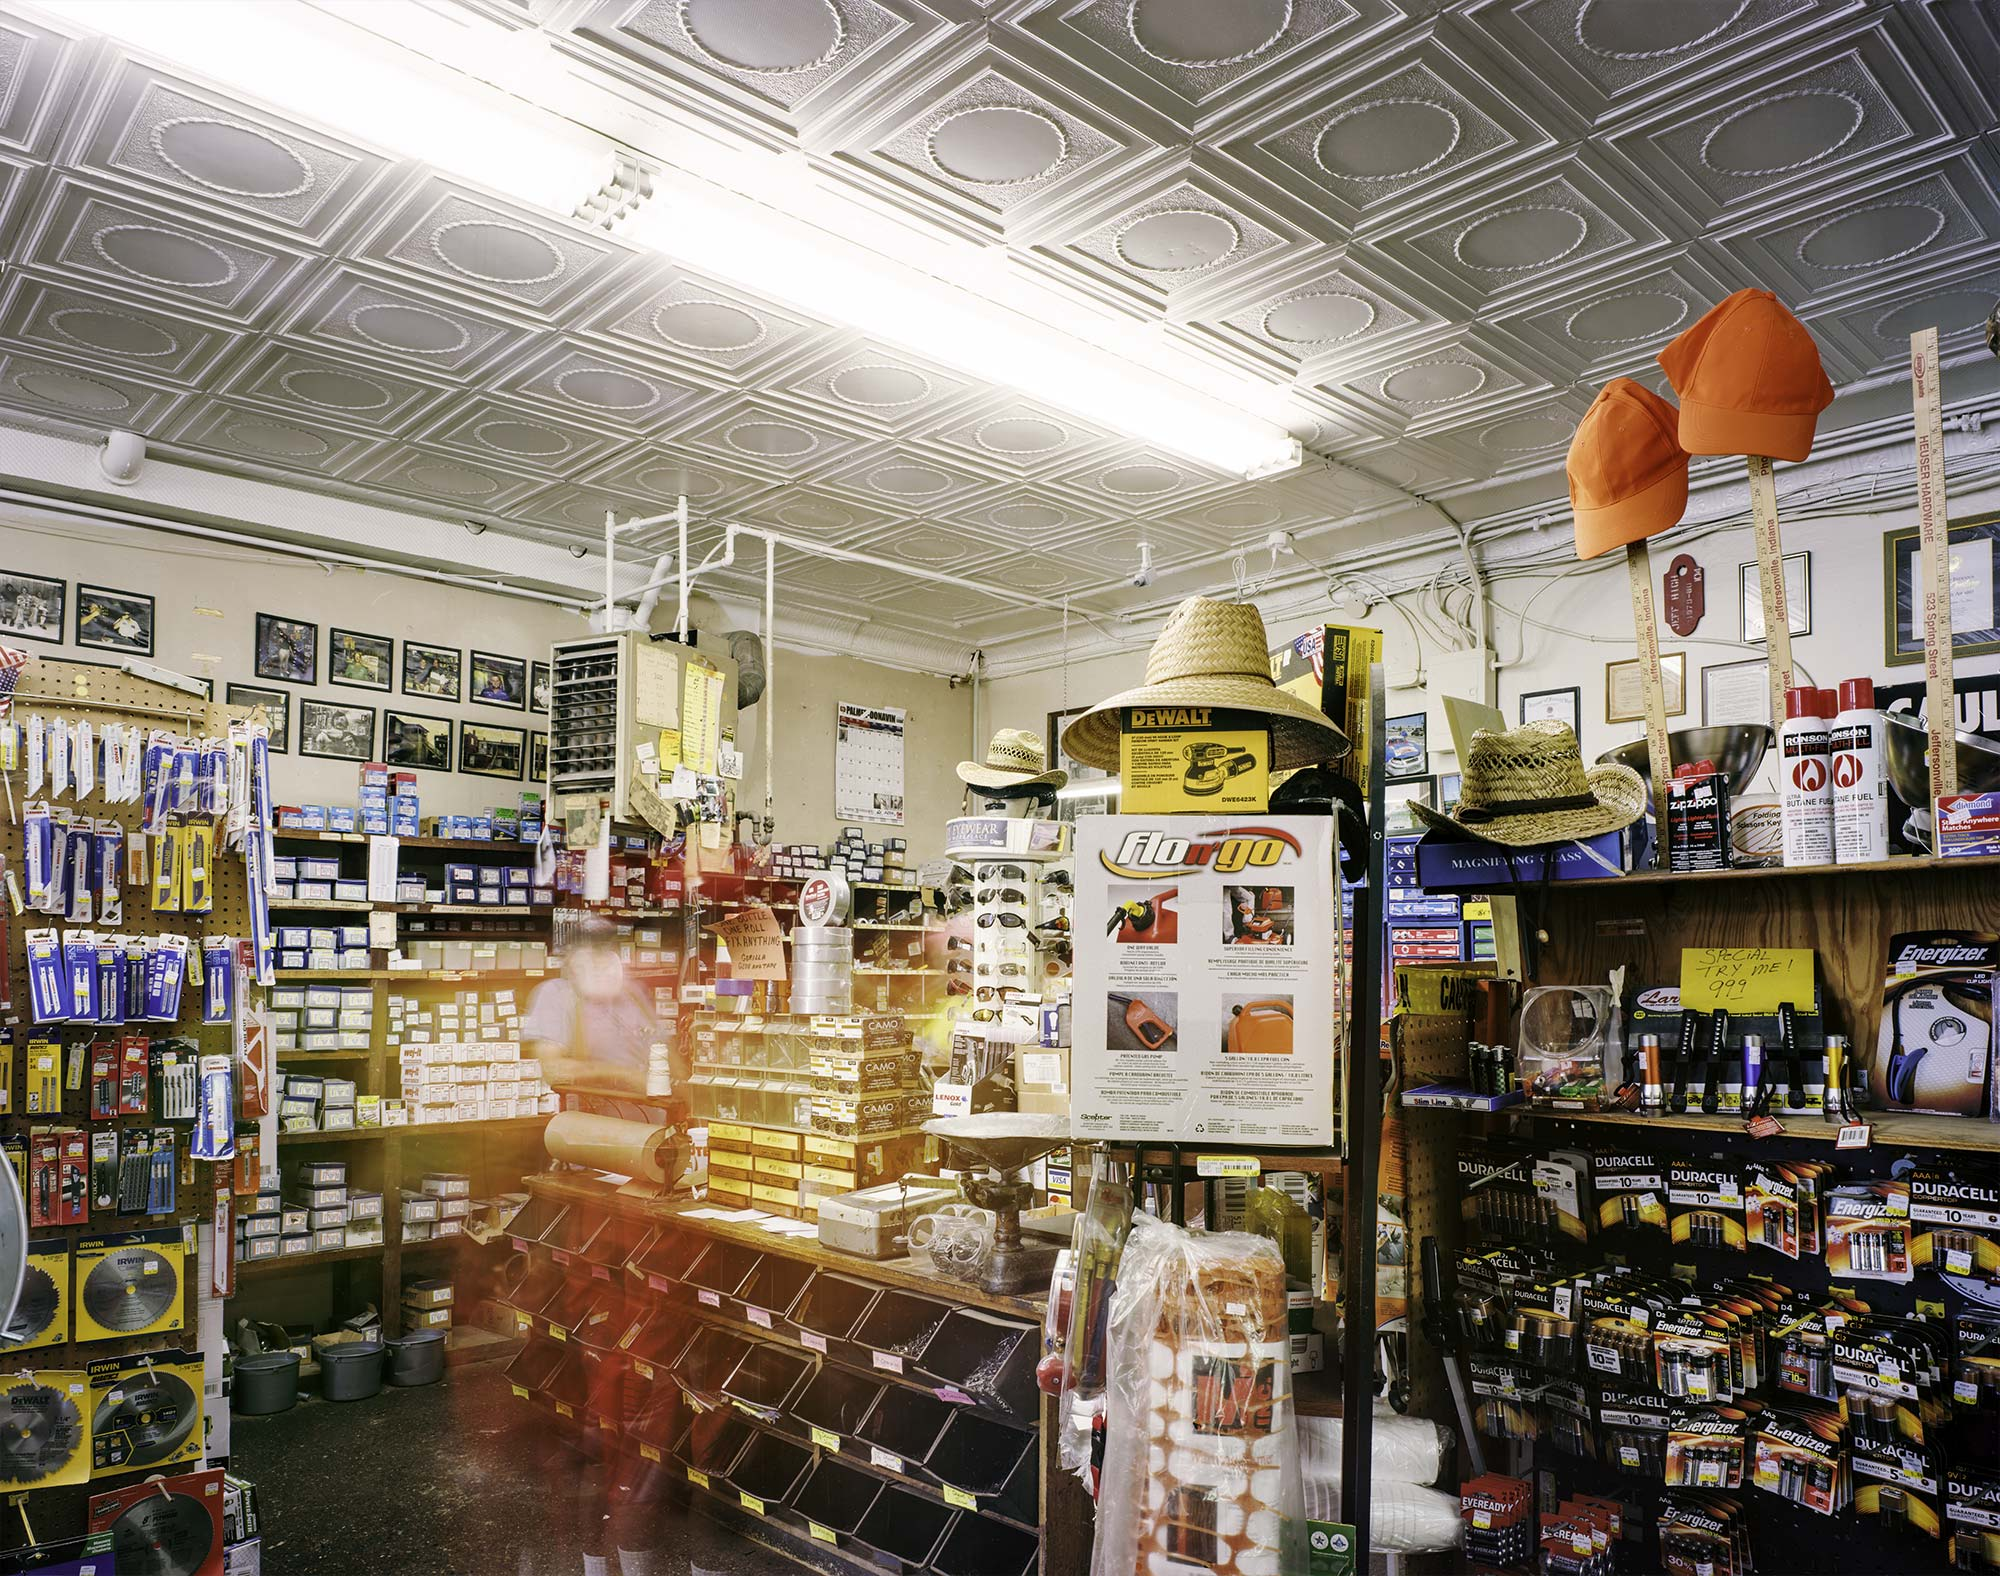 """""""  Heuser Hardware"""" by Charles Mintz, 32 x 40in, Inkjet Print From Scanned FIlm (2016), $1000 